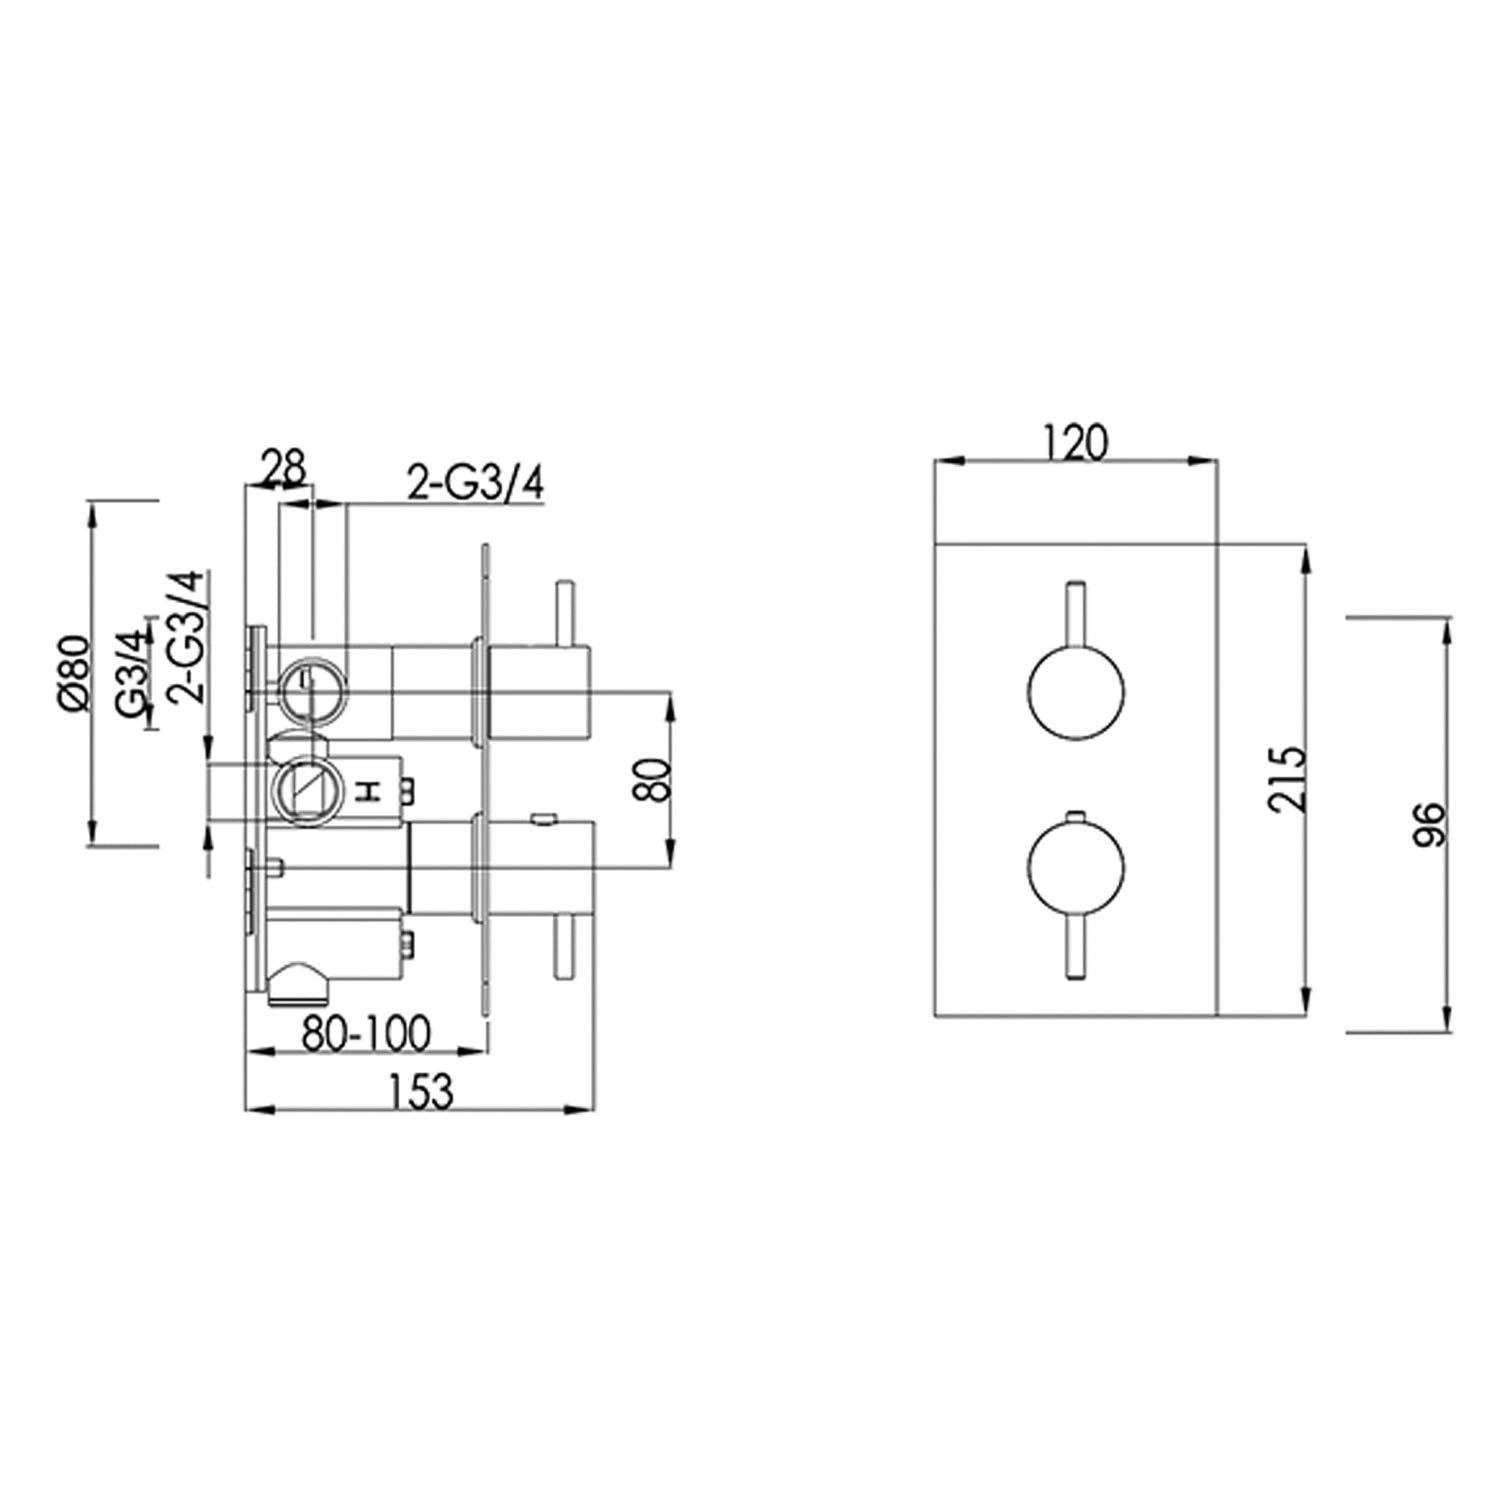 Dual outlet Modale Concealed Shower Valve with a chrome finish dimensional drawing